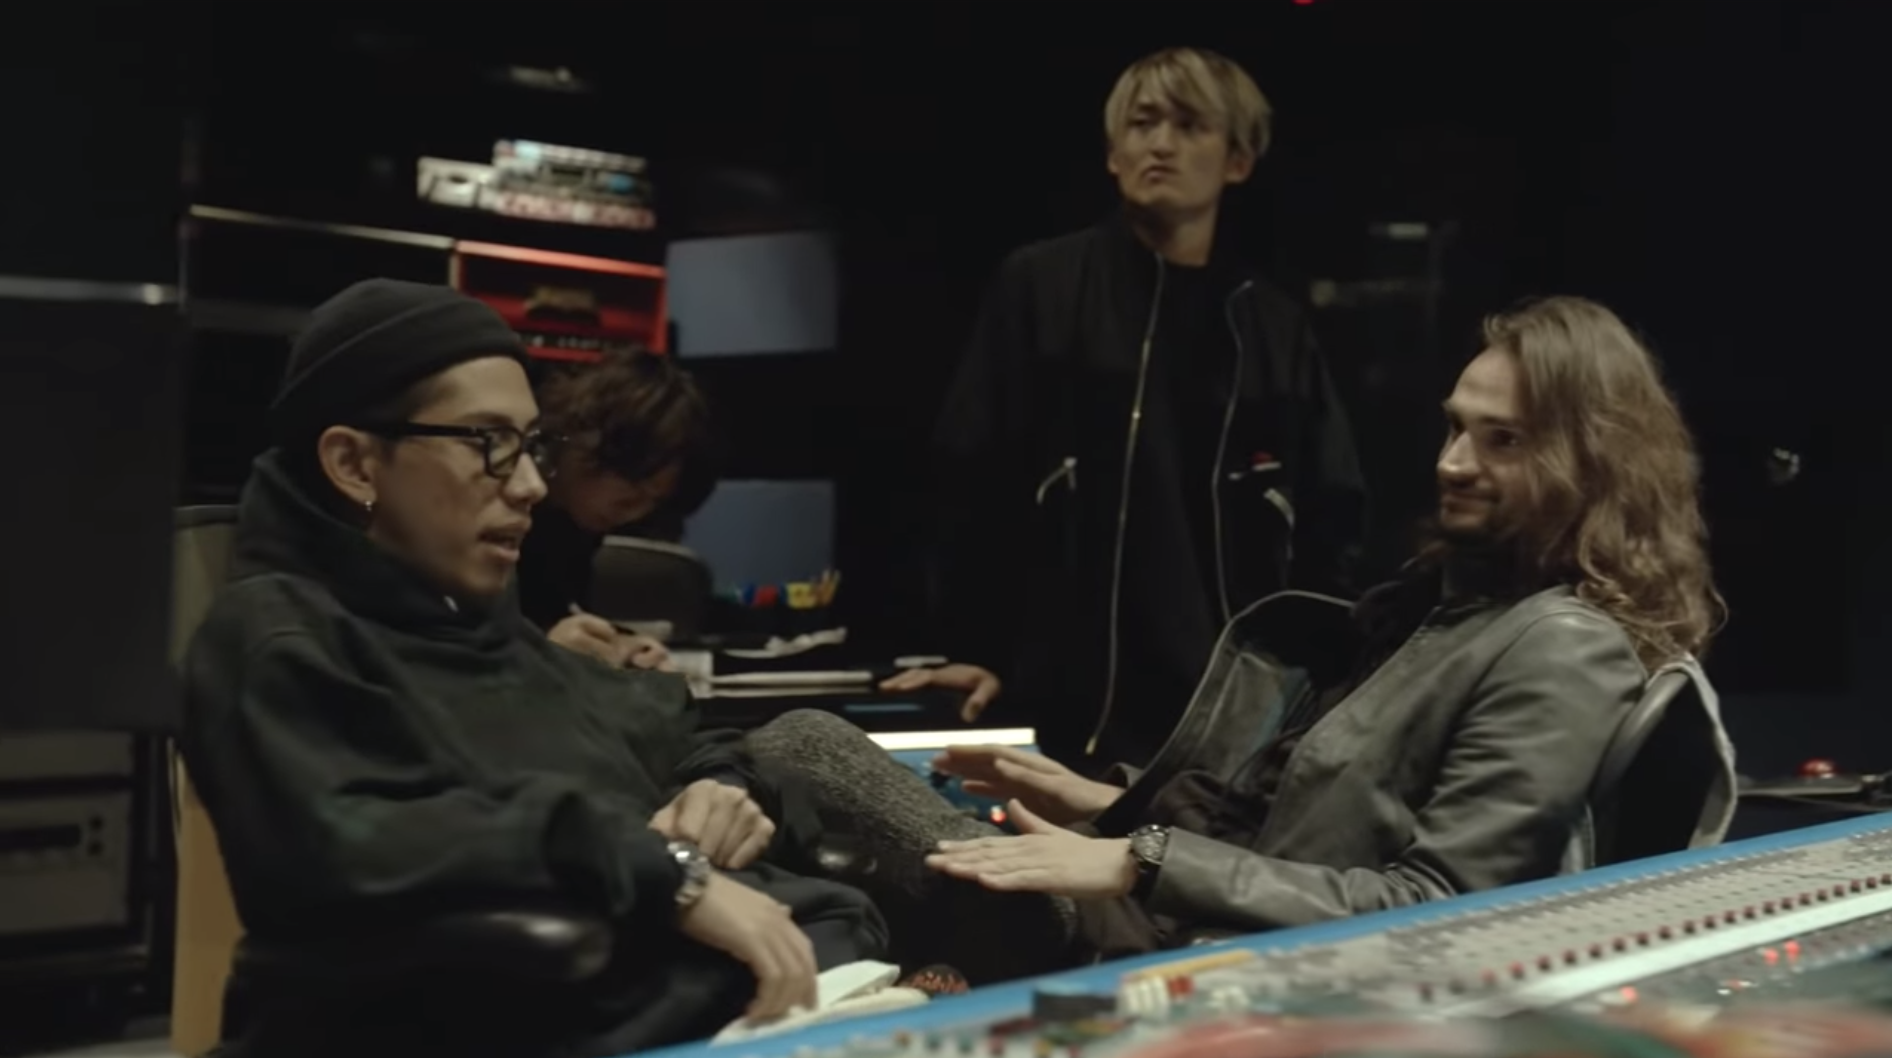 Listen To A Teaser Of A Brand New, Unreleased ONE OK ROCK